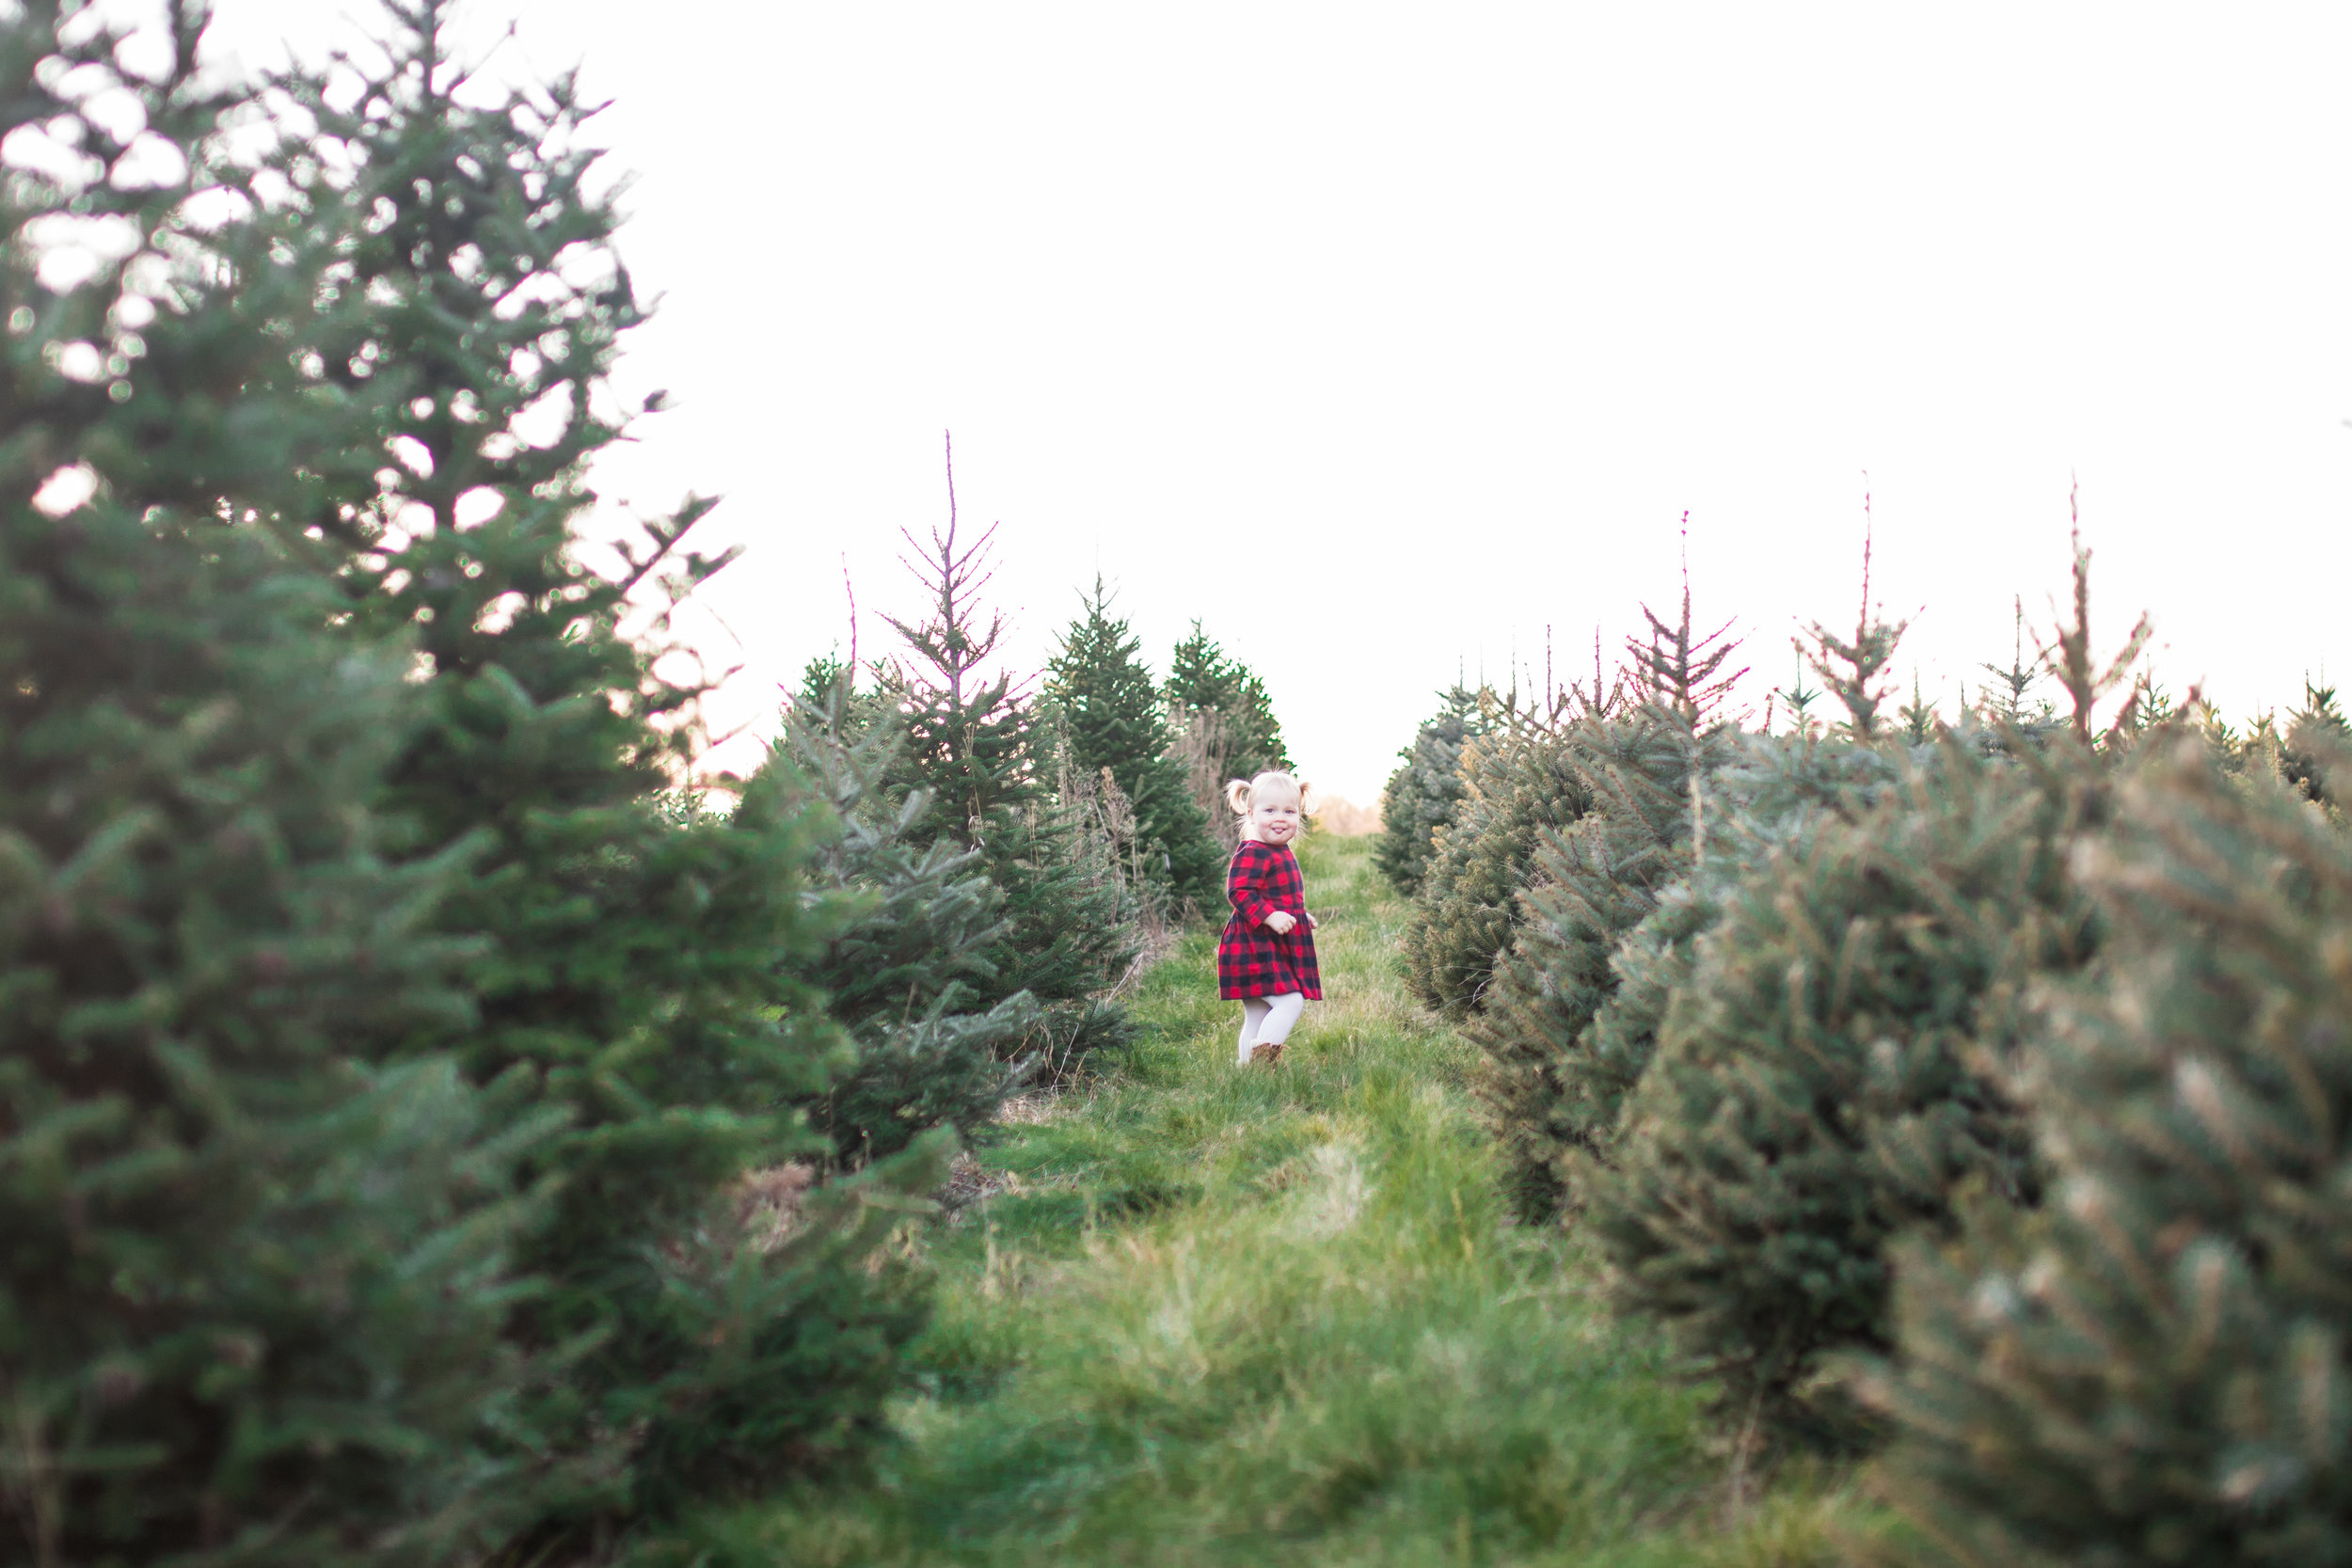 Bussler Mini Session - Hansen Tree Farm -Sabrina Reis Photography - Minneapolis -37.jpg